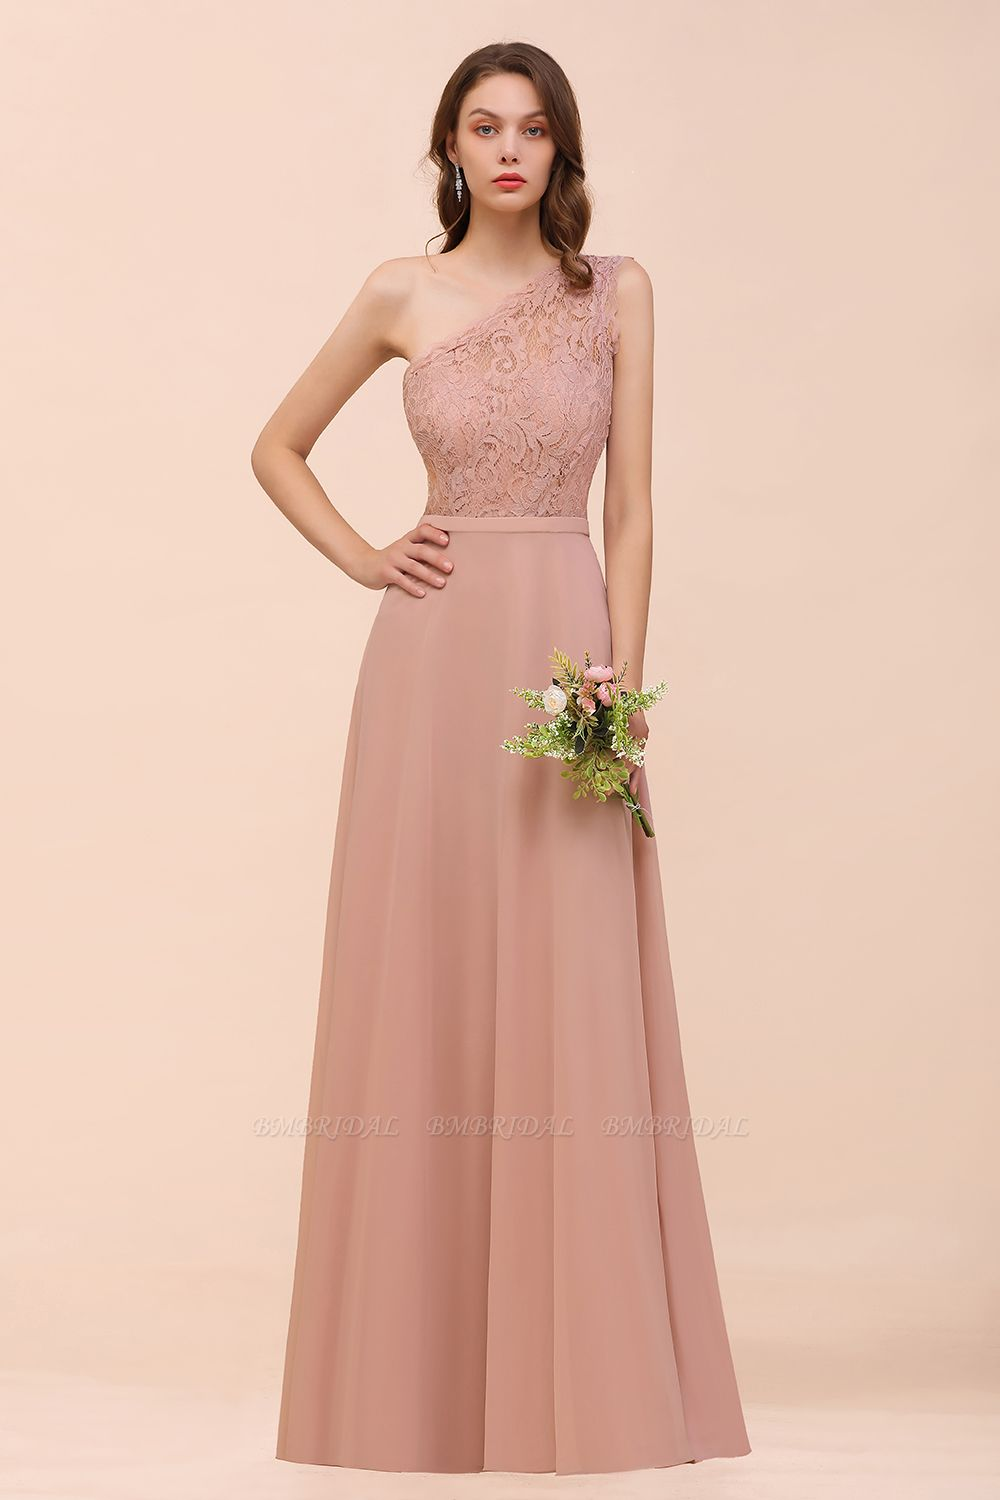 New Arrival Dusty Rose One Shoulder Lace Long Bridesmaid Dress